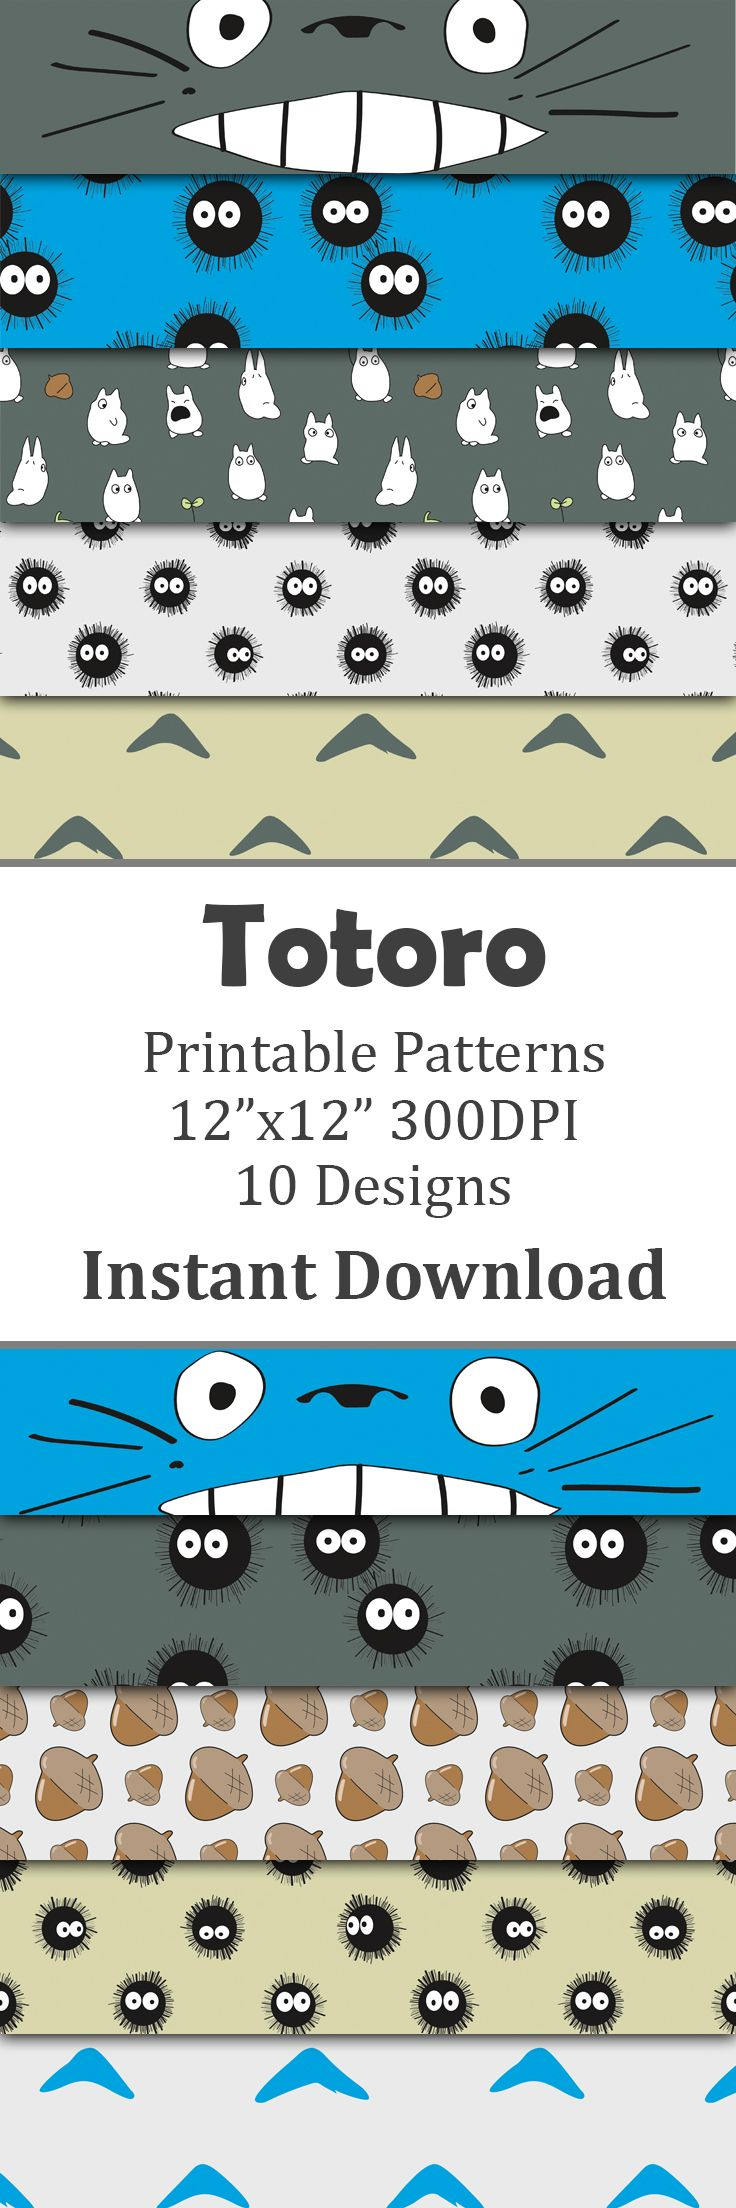 My Neighbor Totoro inspired digital paper pack perfect for scrapbooking projects, invitations, announcements, party favors, wallpapers, graphic design, stationary and paper crafts. This paper pack features your favorite dust bunnies and all three colors of totoros.